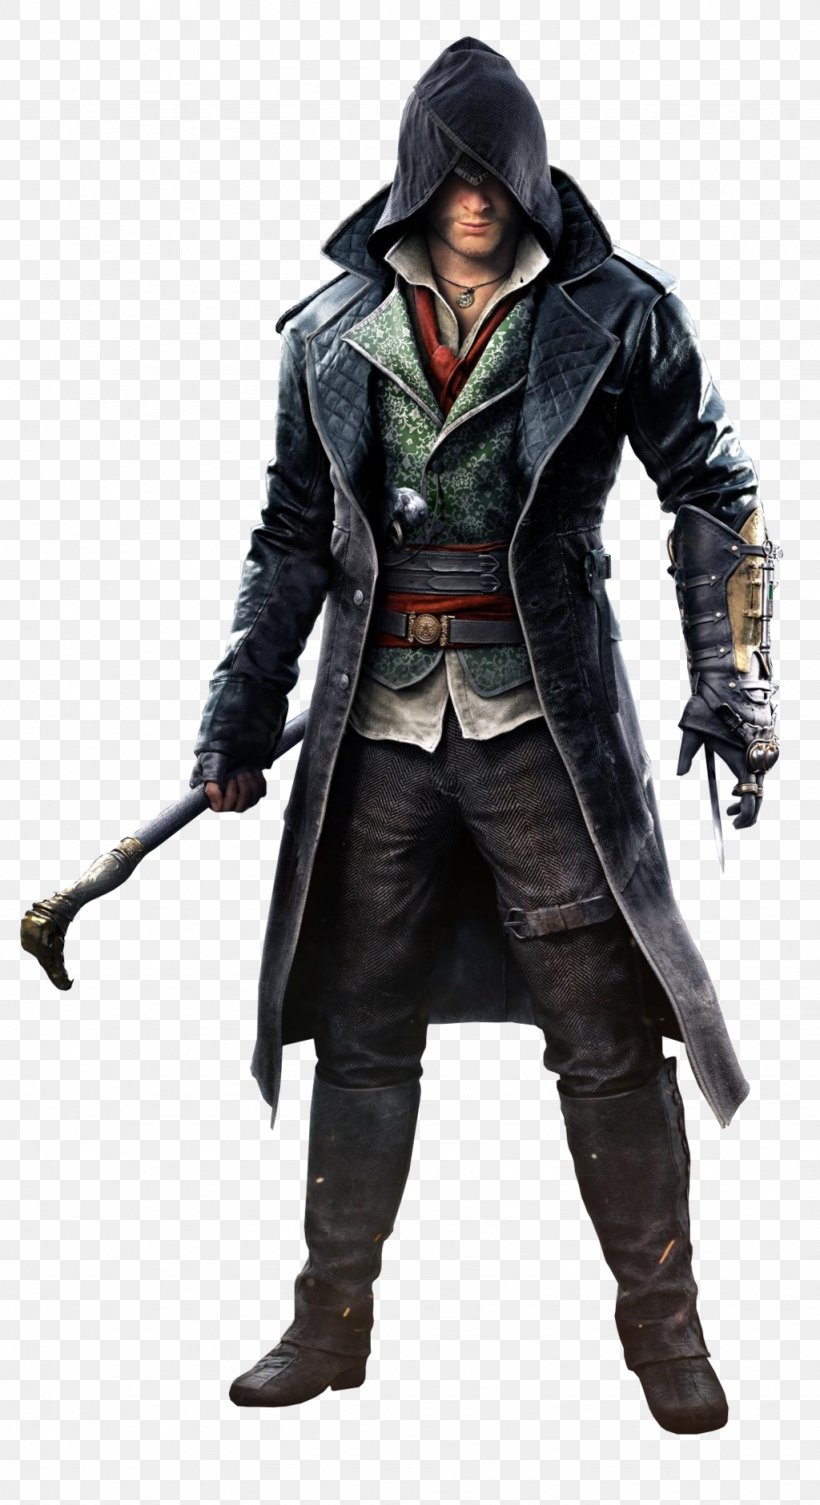 Assassins Creed Syndicate Assassins Creed: Origins Assassins Creed: Brotherhood, PNG, 1024x1880px, Assassins Creed Syndicate, Action Figure, Alexander Graham Bell, Assassins, Assassins Creed Download Free